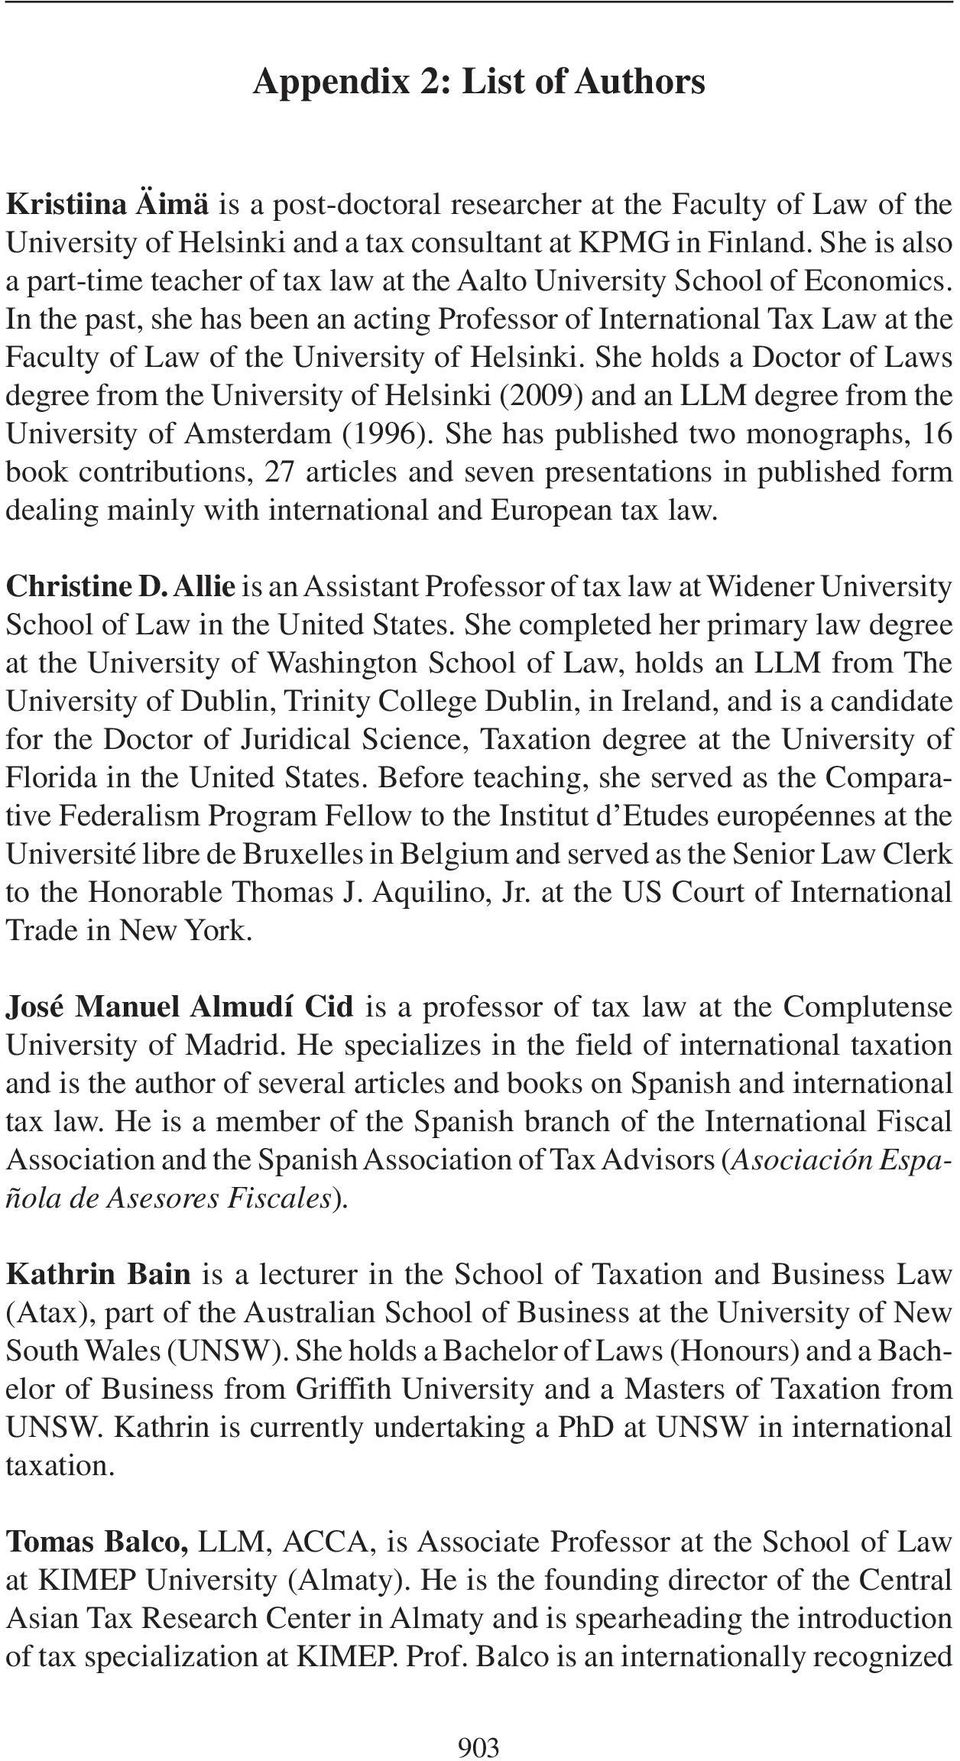 In the past, she has been an acting Professor of International Tax Law at the Faculty of Law of the University of Helsinki.